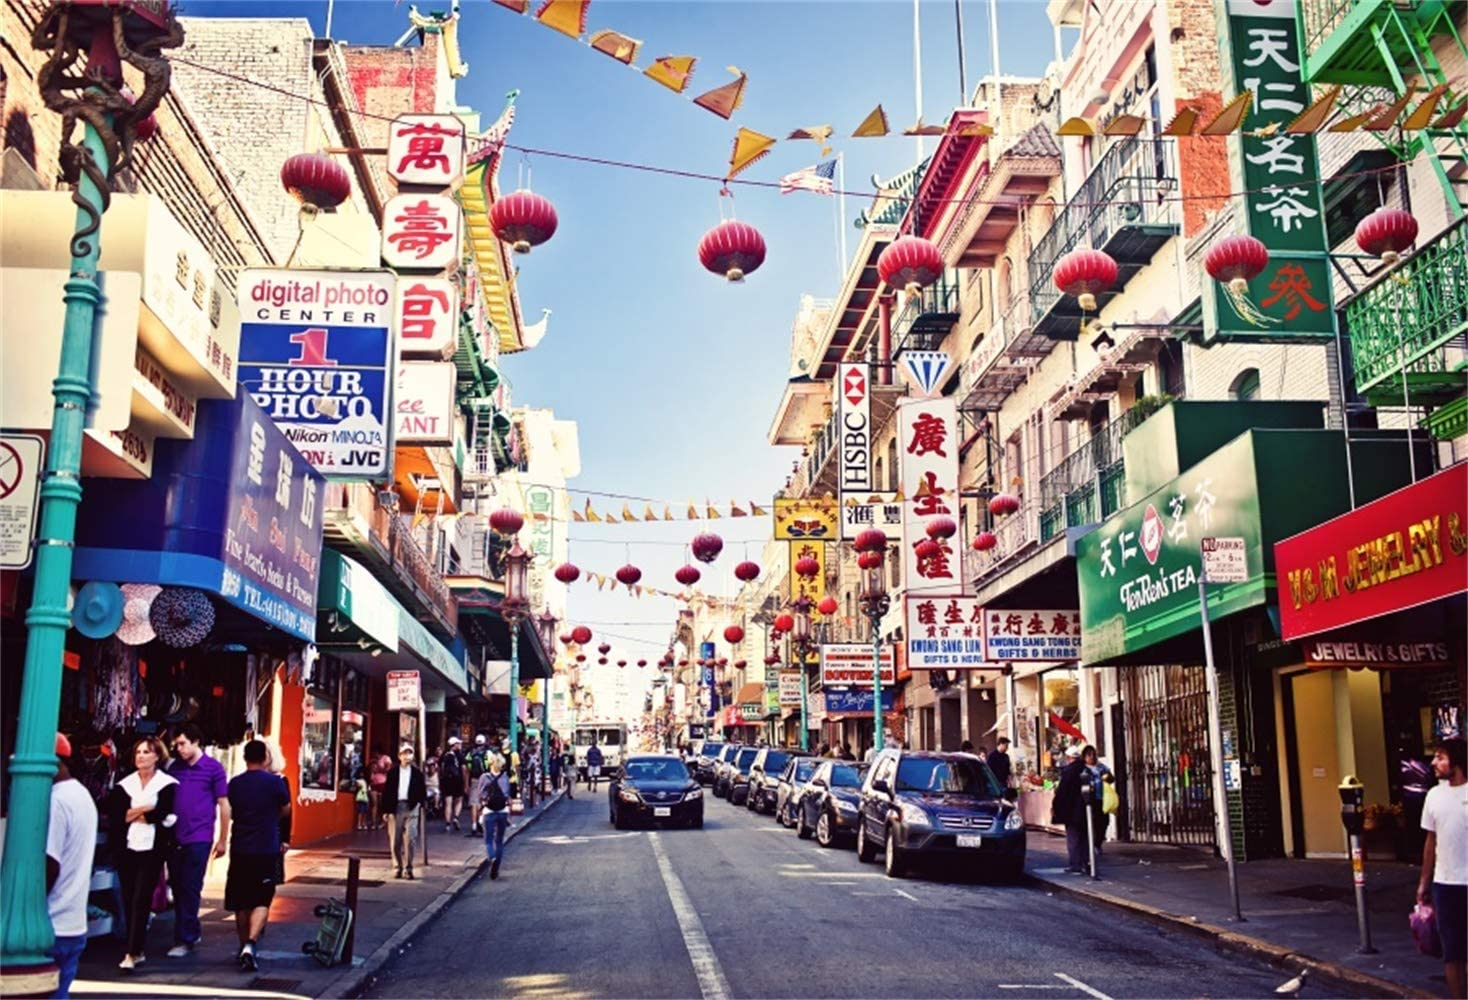 10x6.5ft Chinatown District Polyester Photography Background American City Backdrop Various Chinese Style Stores Vintage Personal Portraits Film Shoot Video Studio San Francisco Streetscape